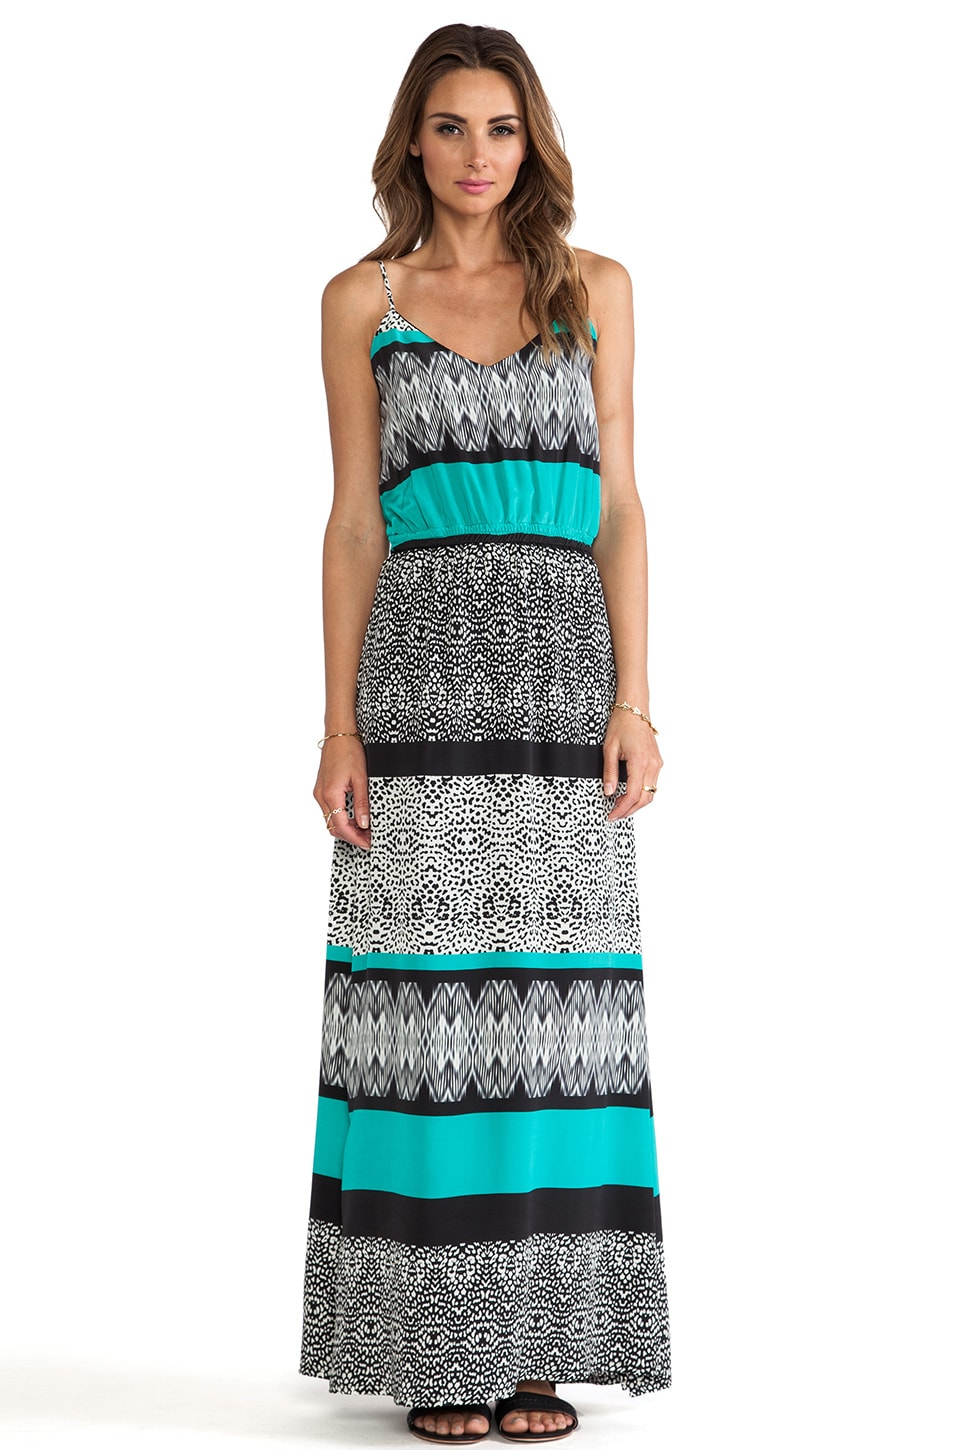 Vix Swimwear Sawi Mabel Long Dress in Aqua